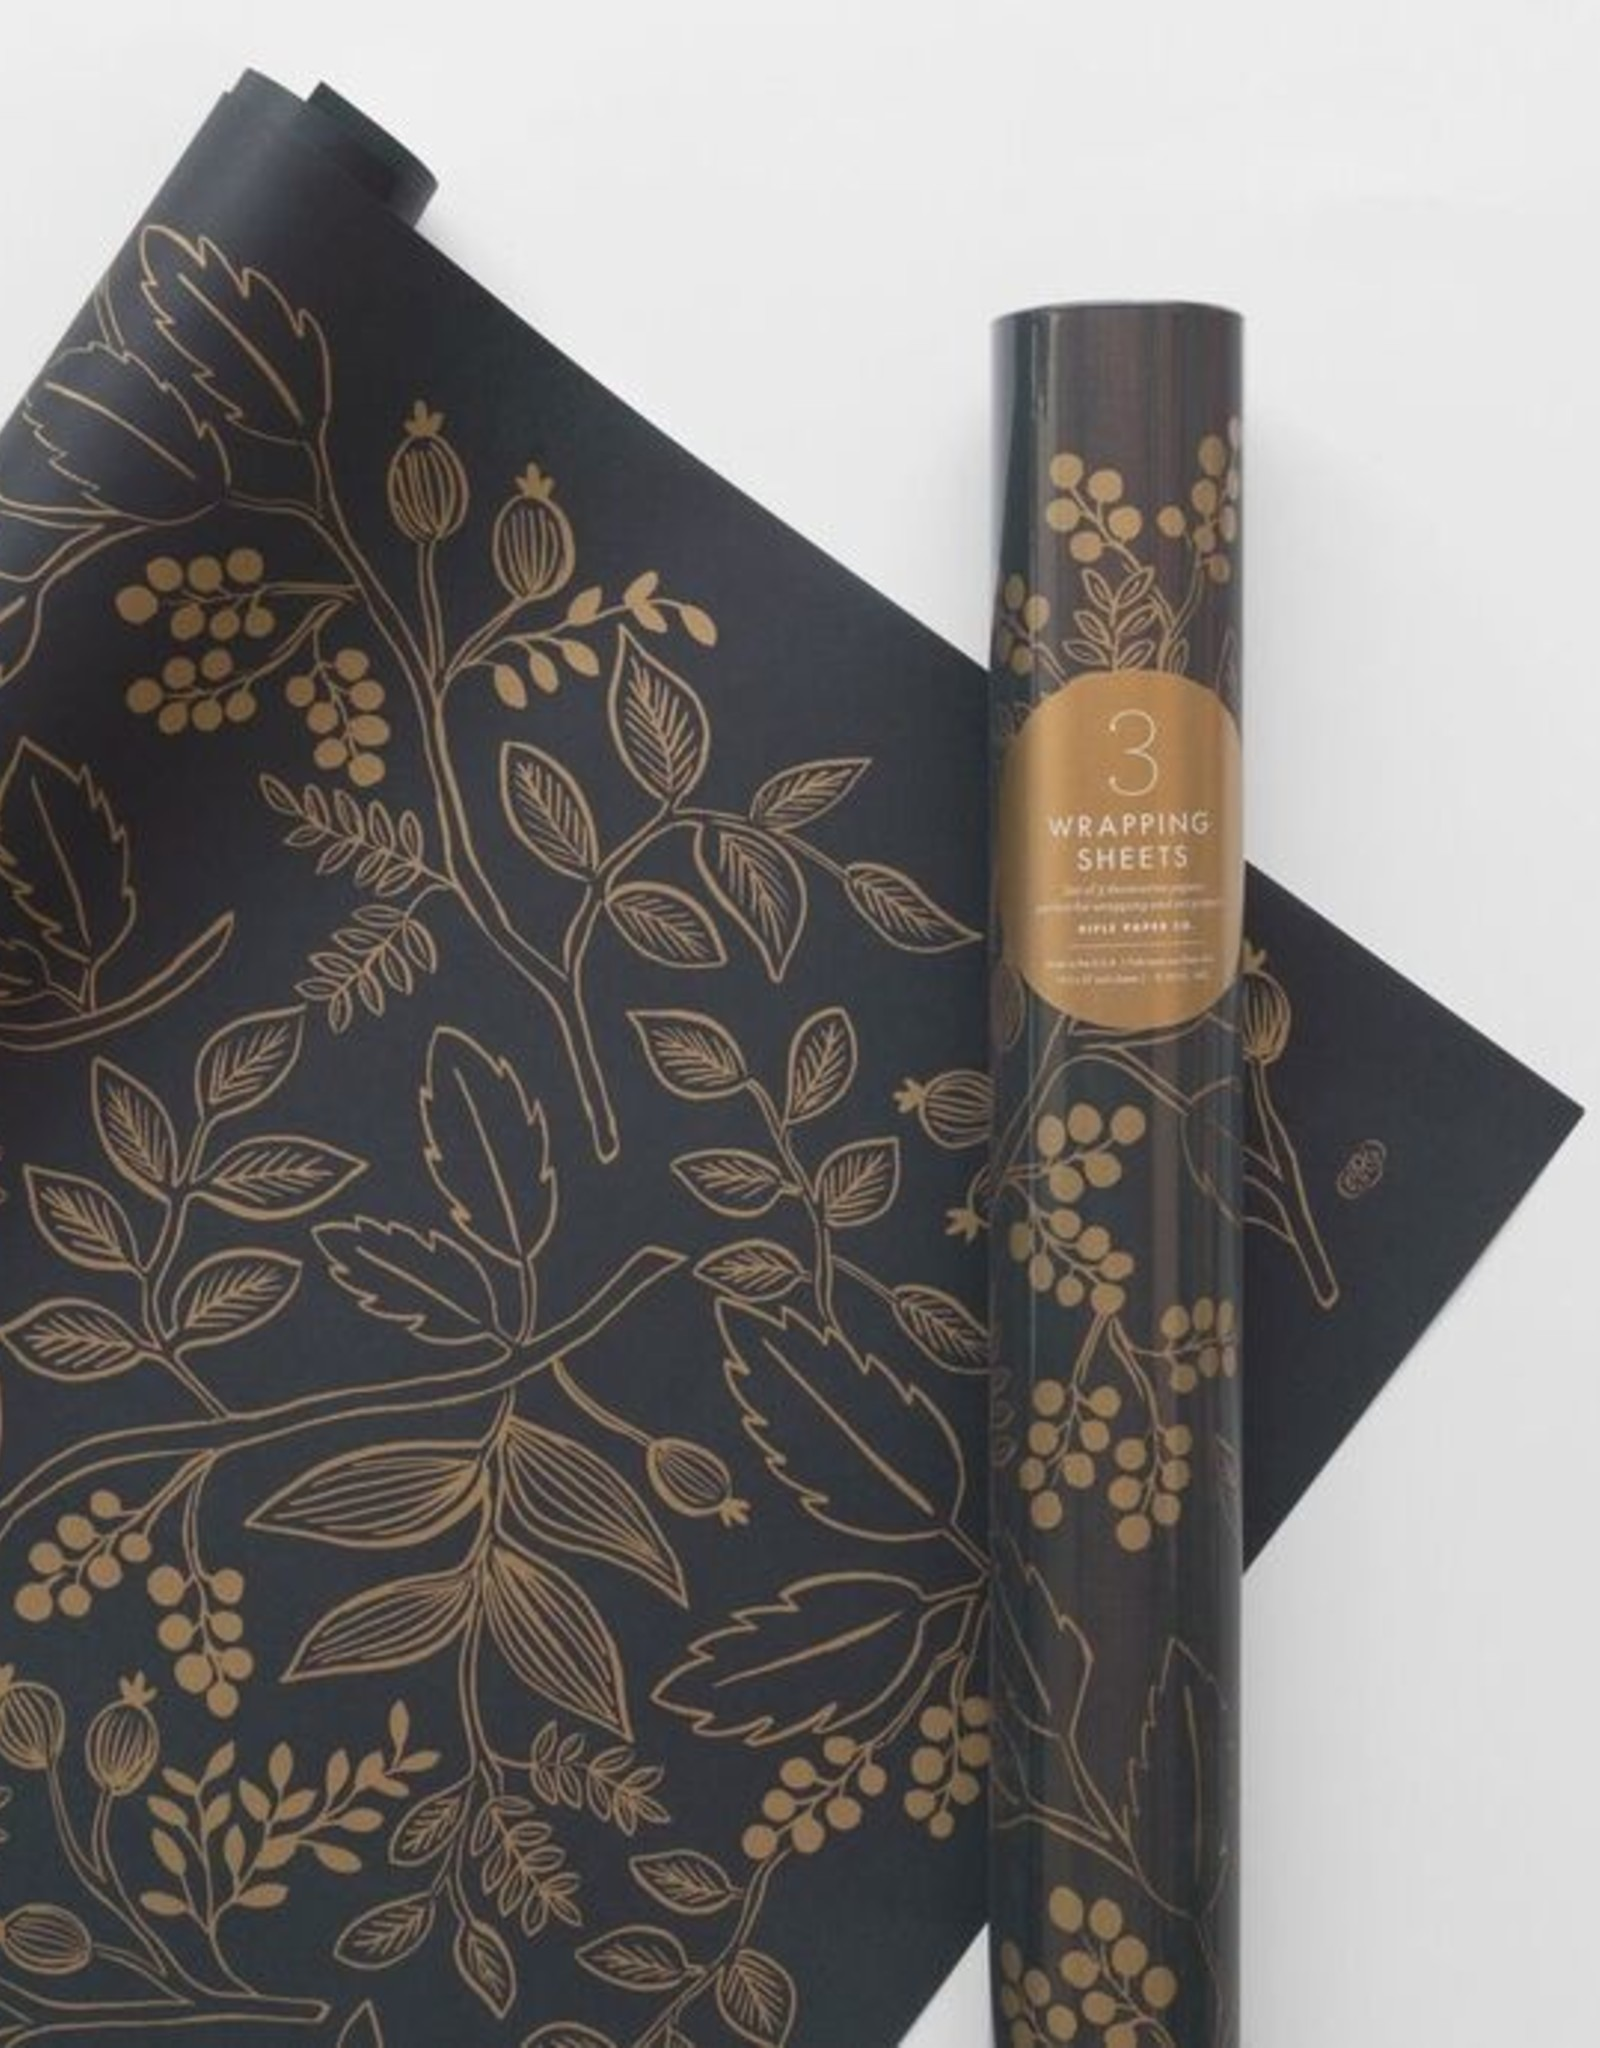 Roll of 3 Wrapping Sheets - Queen Anne